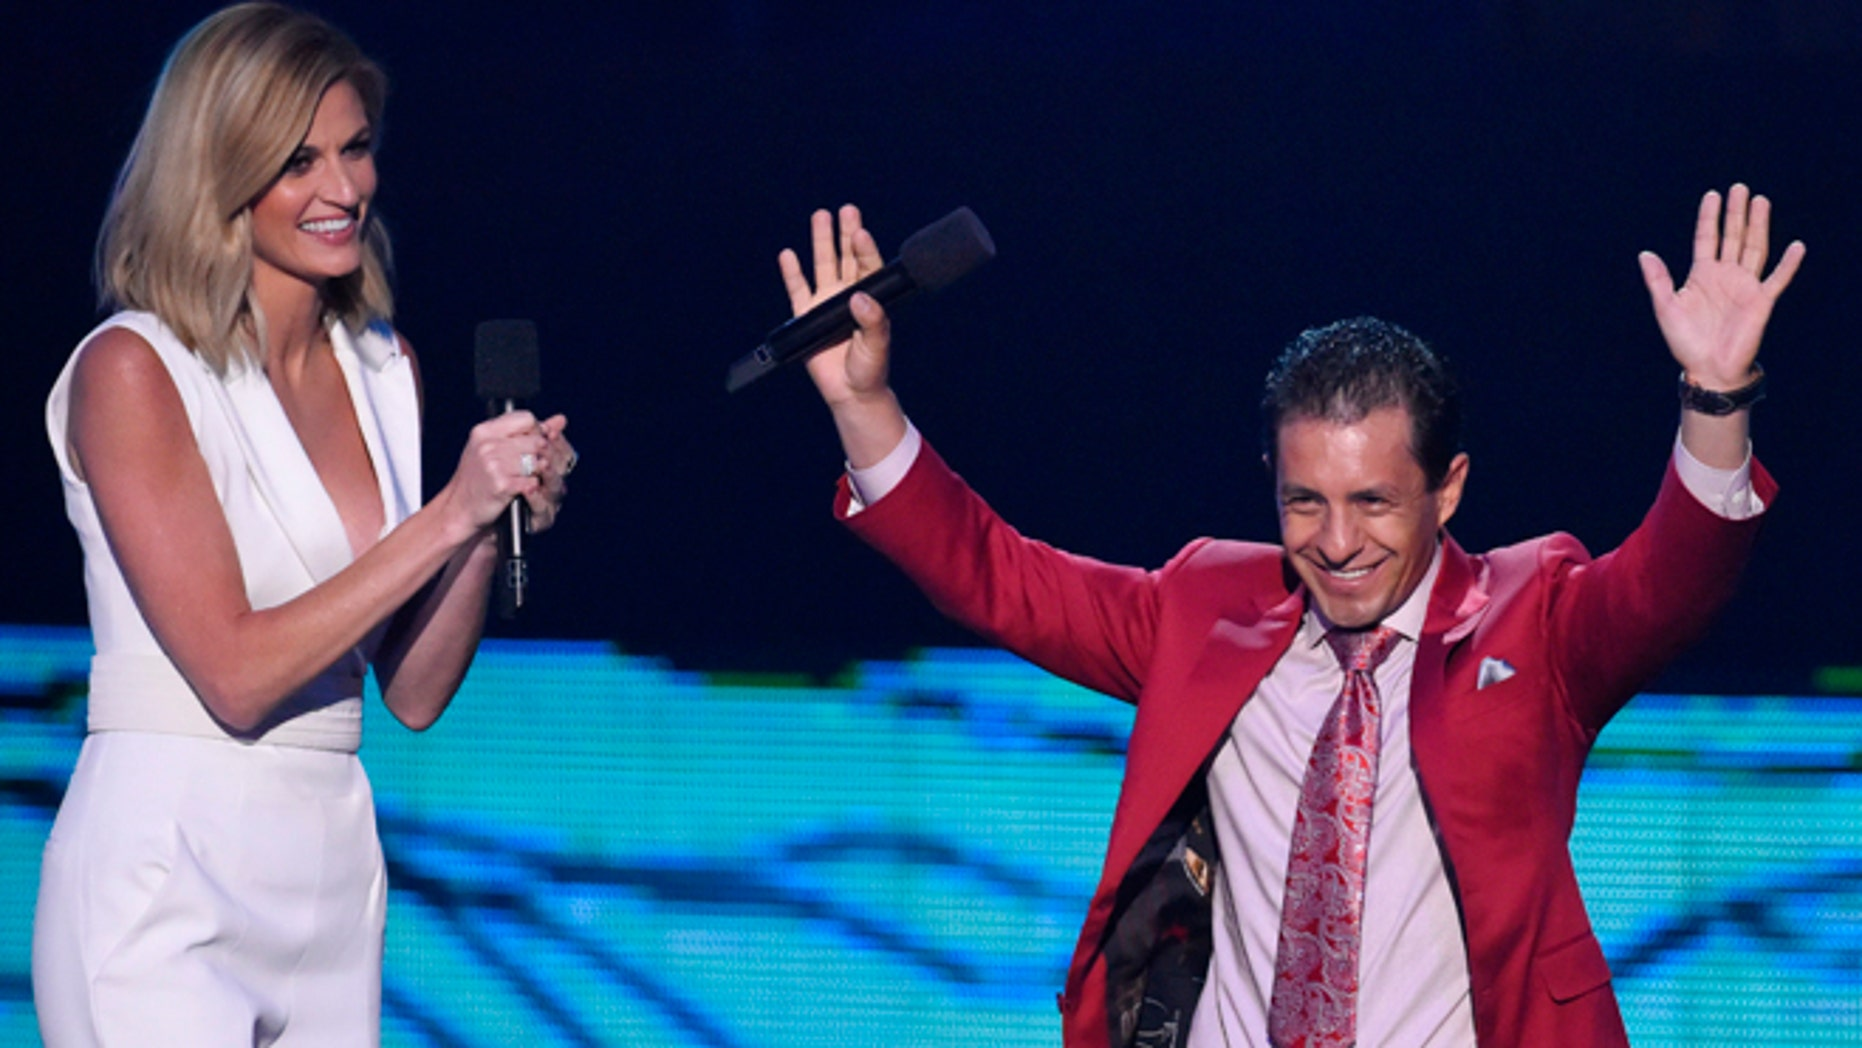 Triple Crown winning jockey Victor Espinoza, who rode American Pharoah, is introduced by show co-host Erin Andrews during the 2015 CMT Awards in Nashville, Tennessee June 10, 2015. REUTERS/Harrison McClary - RTX1G0BV